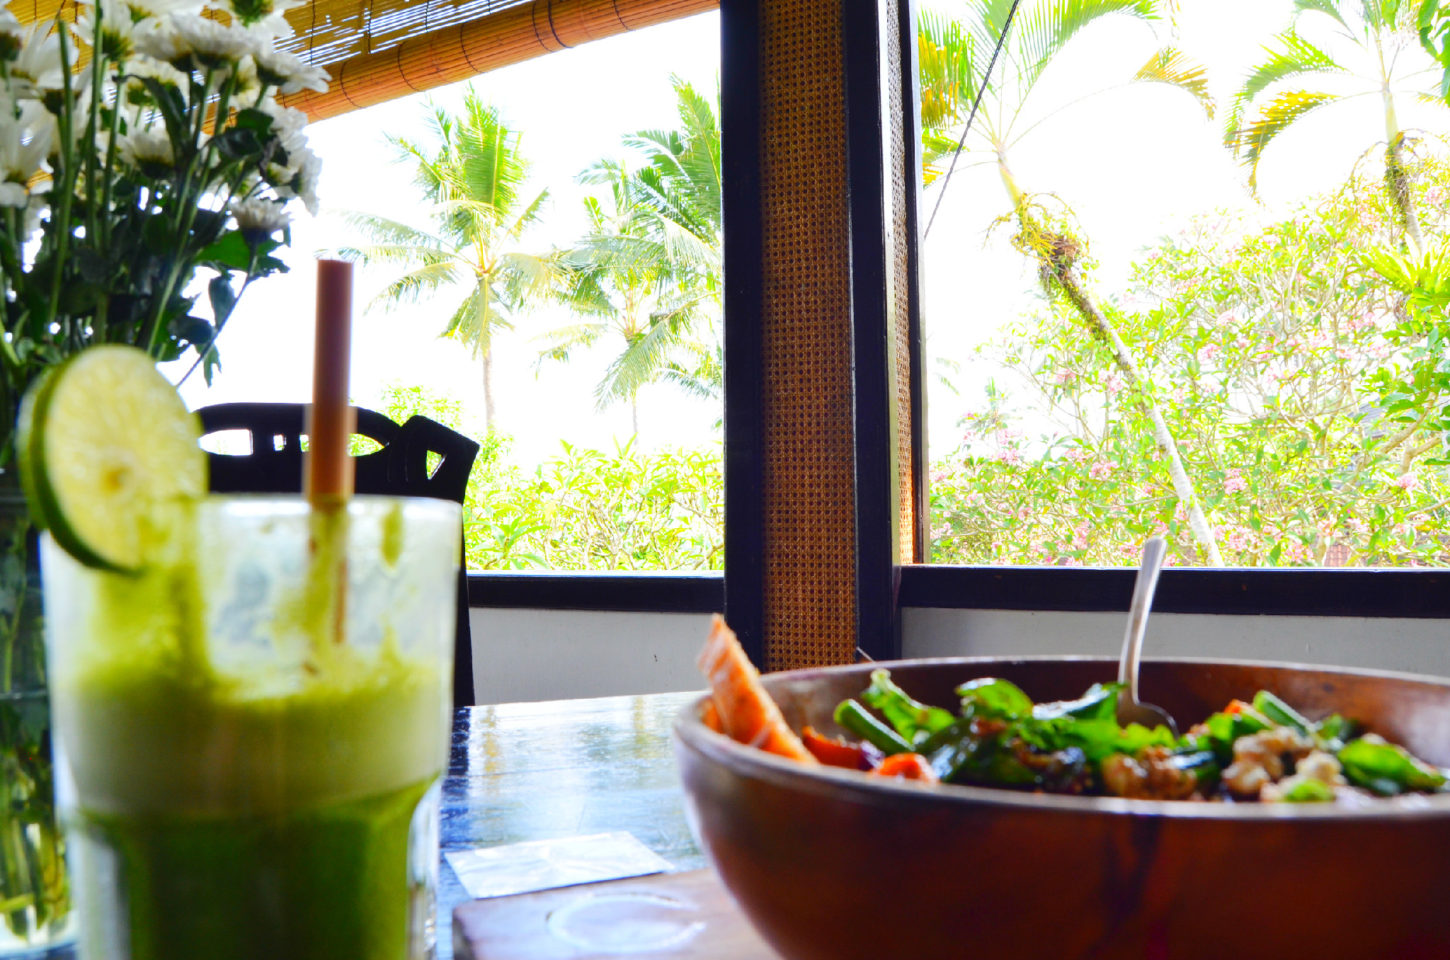 lifestyle redesign  - dsc 0296edited - Bali Travel: Where to Eat and Drink in Ubud